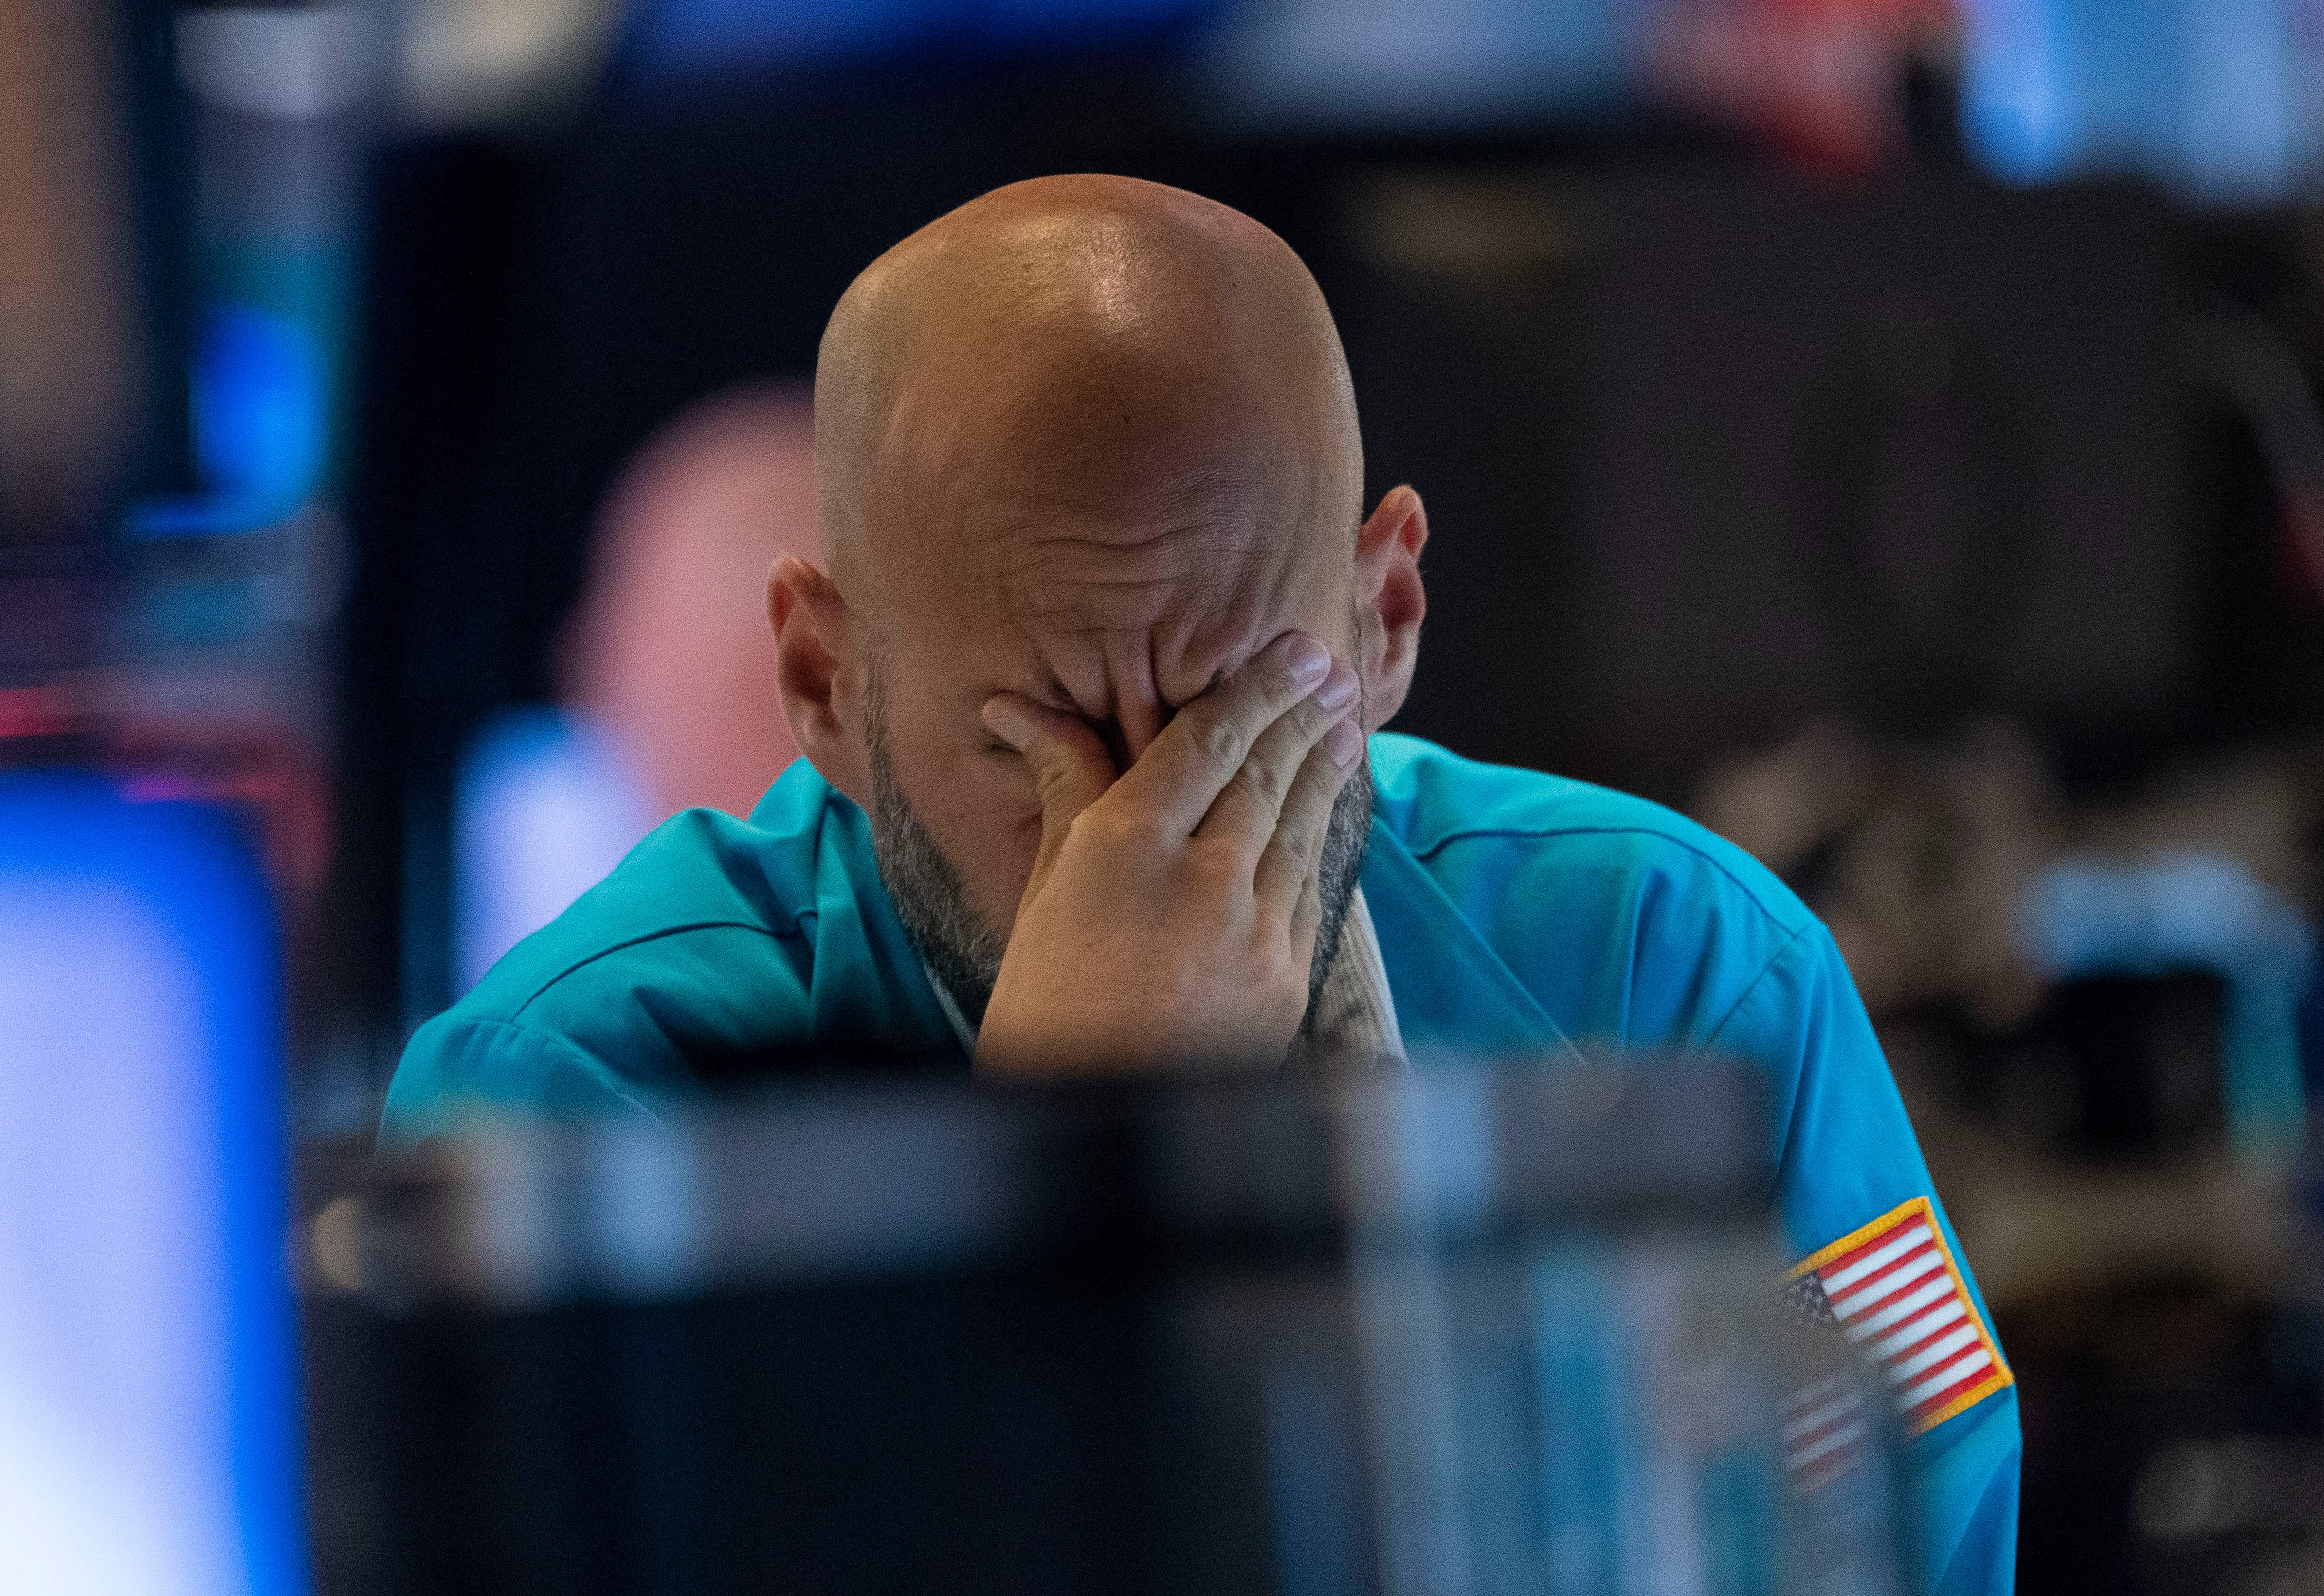 A trader wipes his eyes as he watches stock prices at the New York Stock Exchange August 23, 2019 in New York. - Wall Street stocks tanked Friday after President Donald Trump vowed a tough response to new Chinese tariffs, escalating the trade war between the world's top two economies amid rising fears of recession. The Dow Jones Industrial Average sank more than 600 points, or 2.4 percent, to 25,628.90, registering its fourth straight weekly loss.